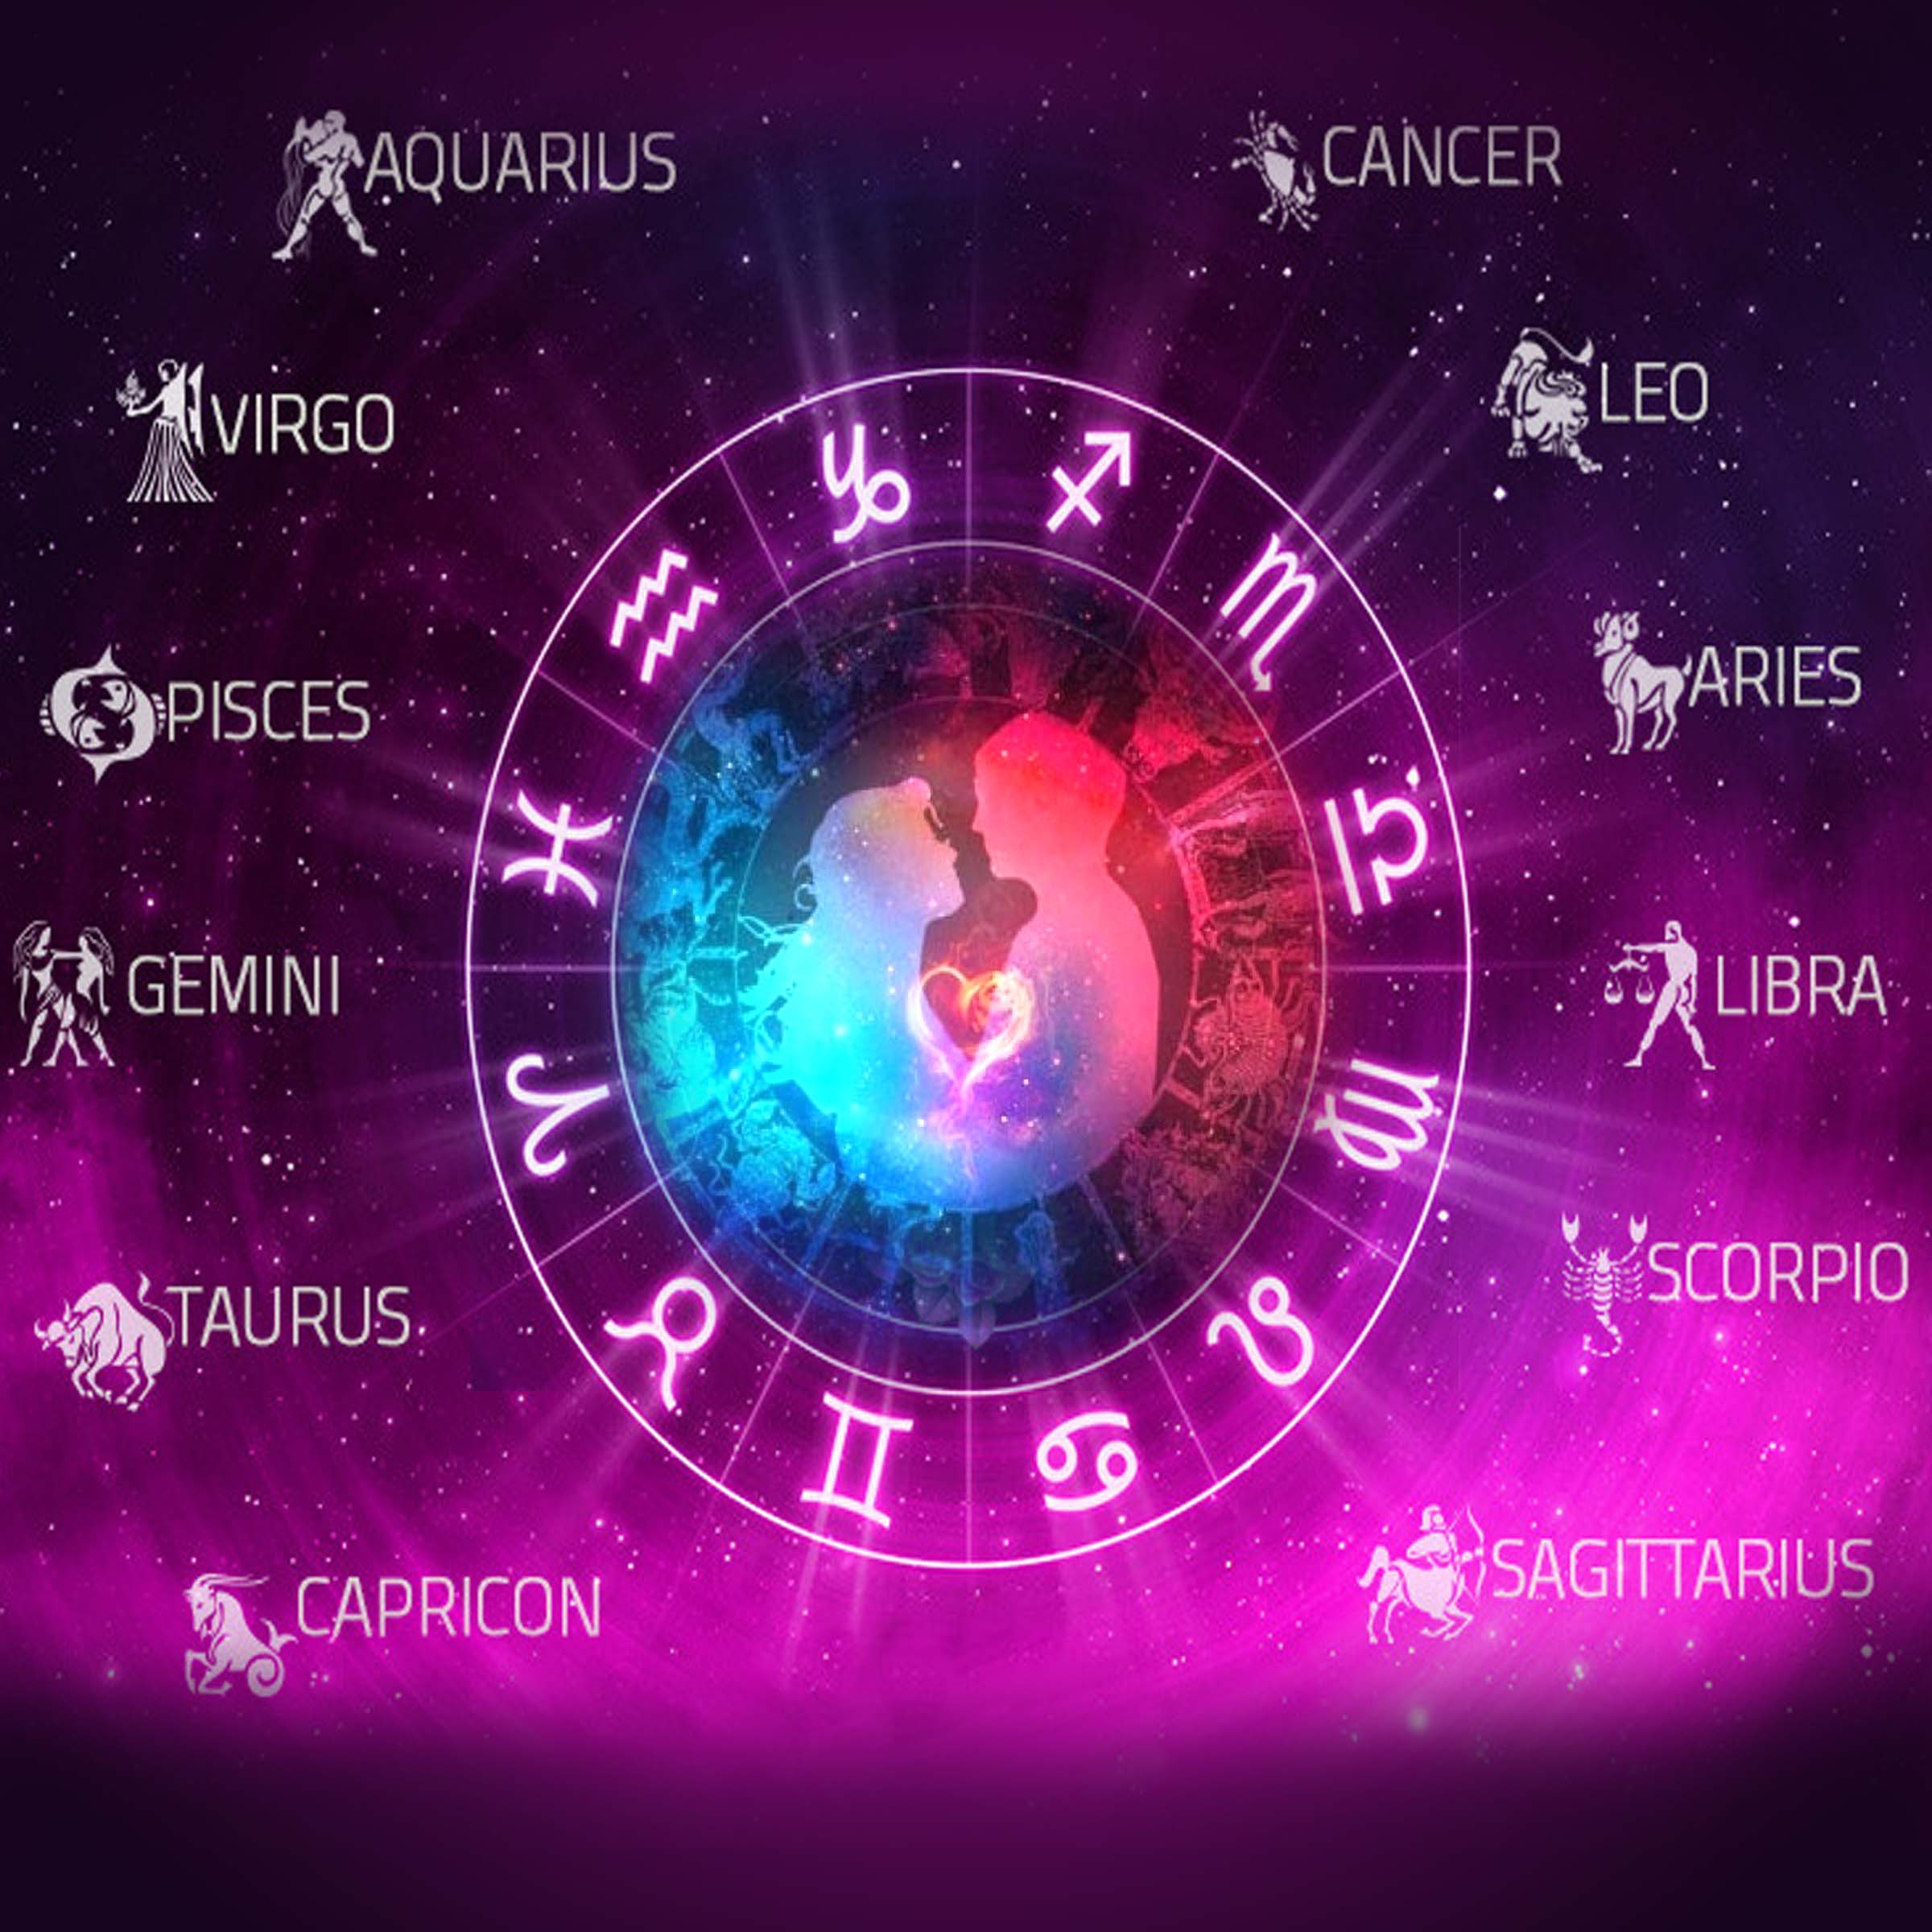 Discover the 12 Love mystery through your signs